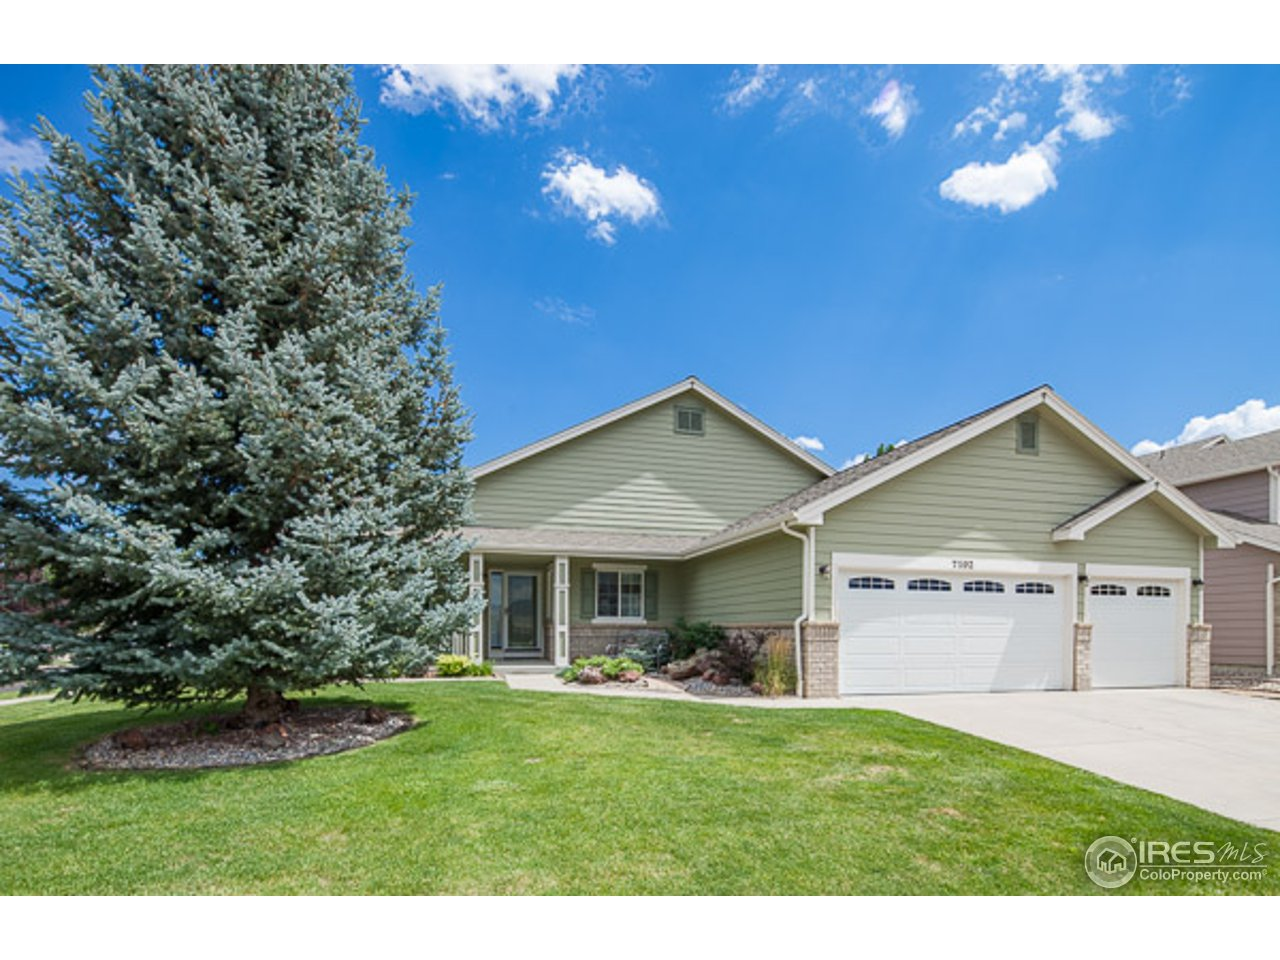 7102 Sedgwick Dr, Fort Collins CO 80525